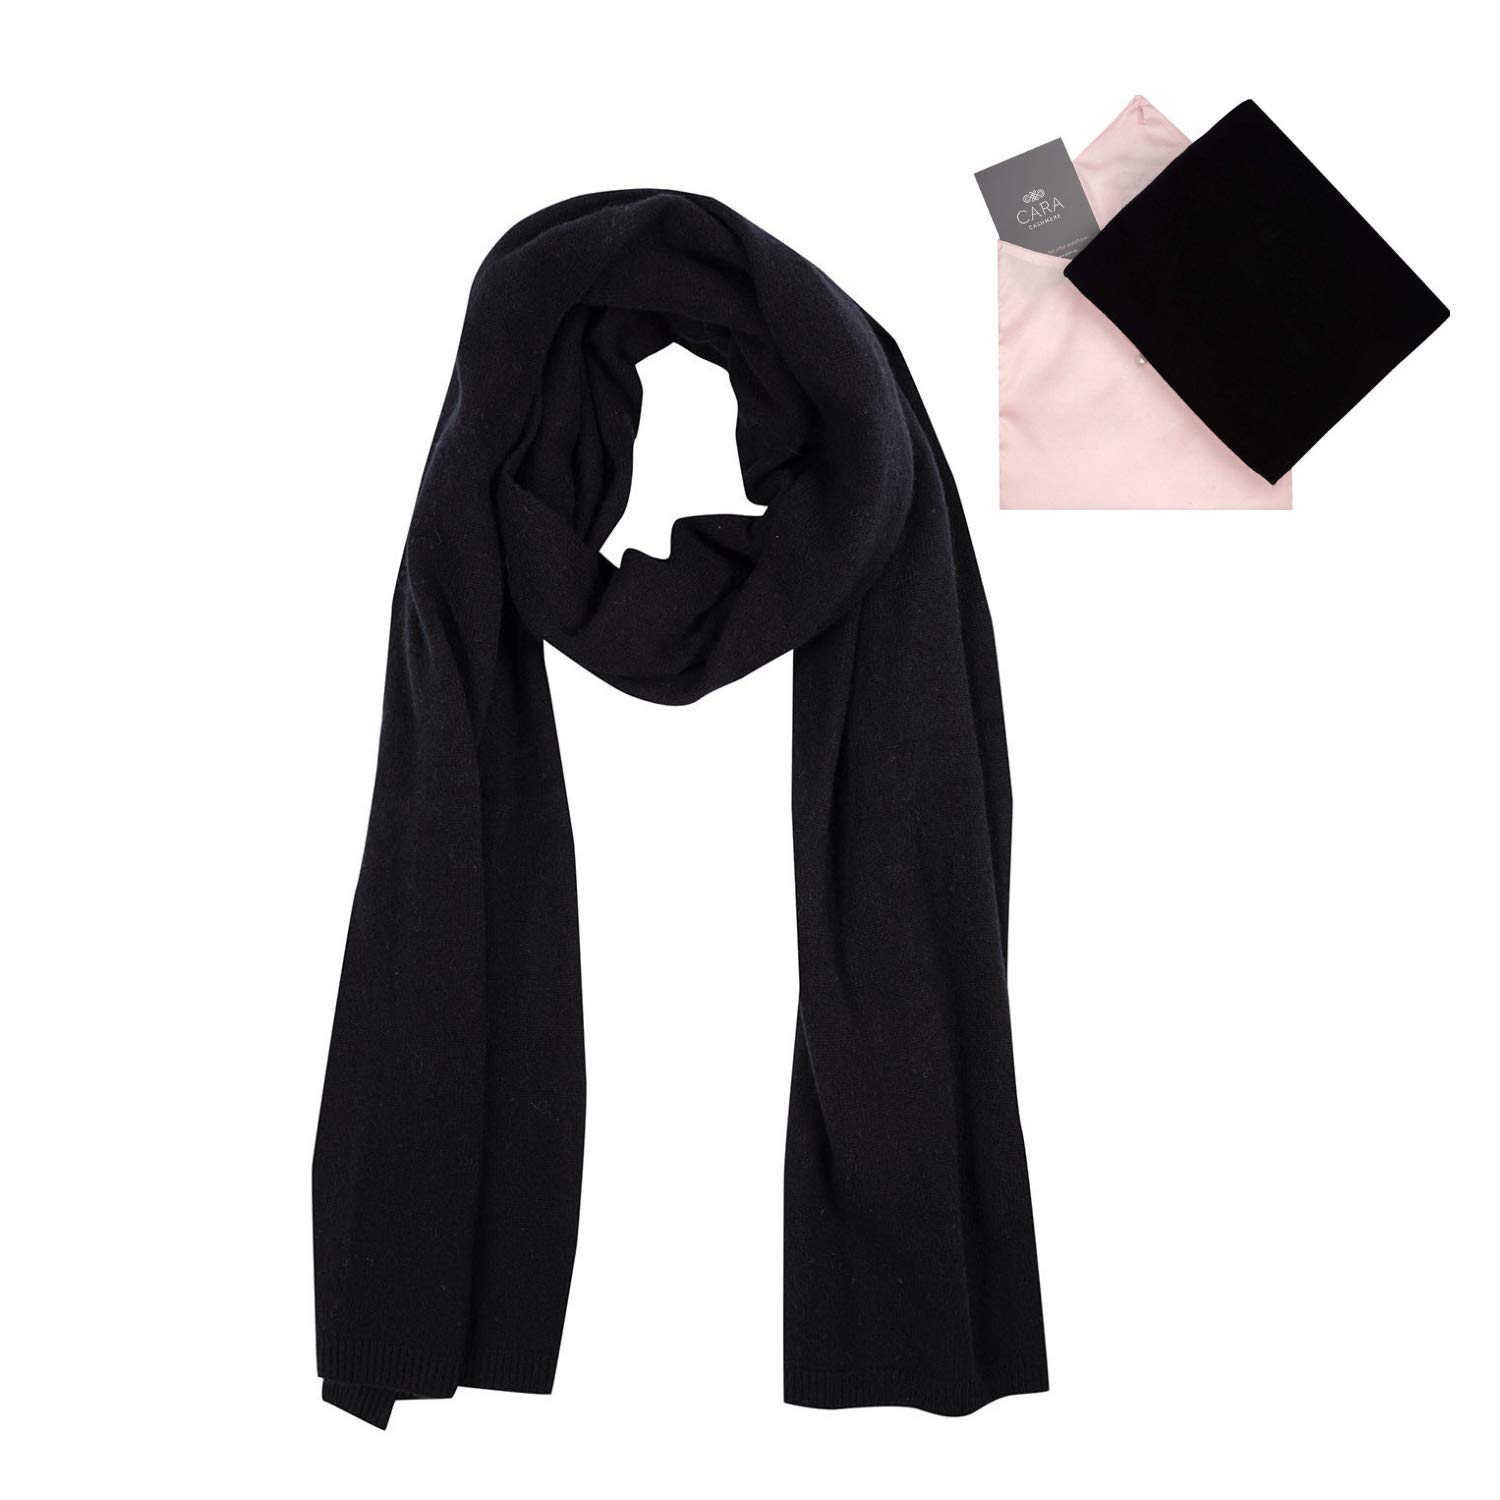 100% Cashmere Wrap Scarf Shawl for Women, Pure Luxury Knit, Ultra Soft, Lightweight and Warm includes Beautiful Silk Gift Bag (Black) by Cara Cashmere